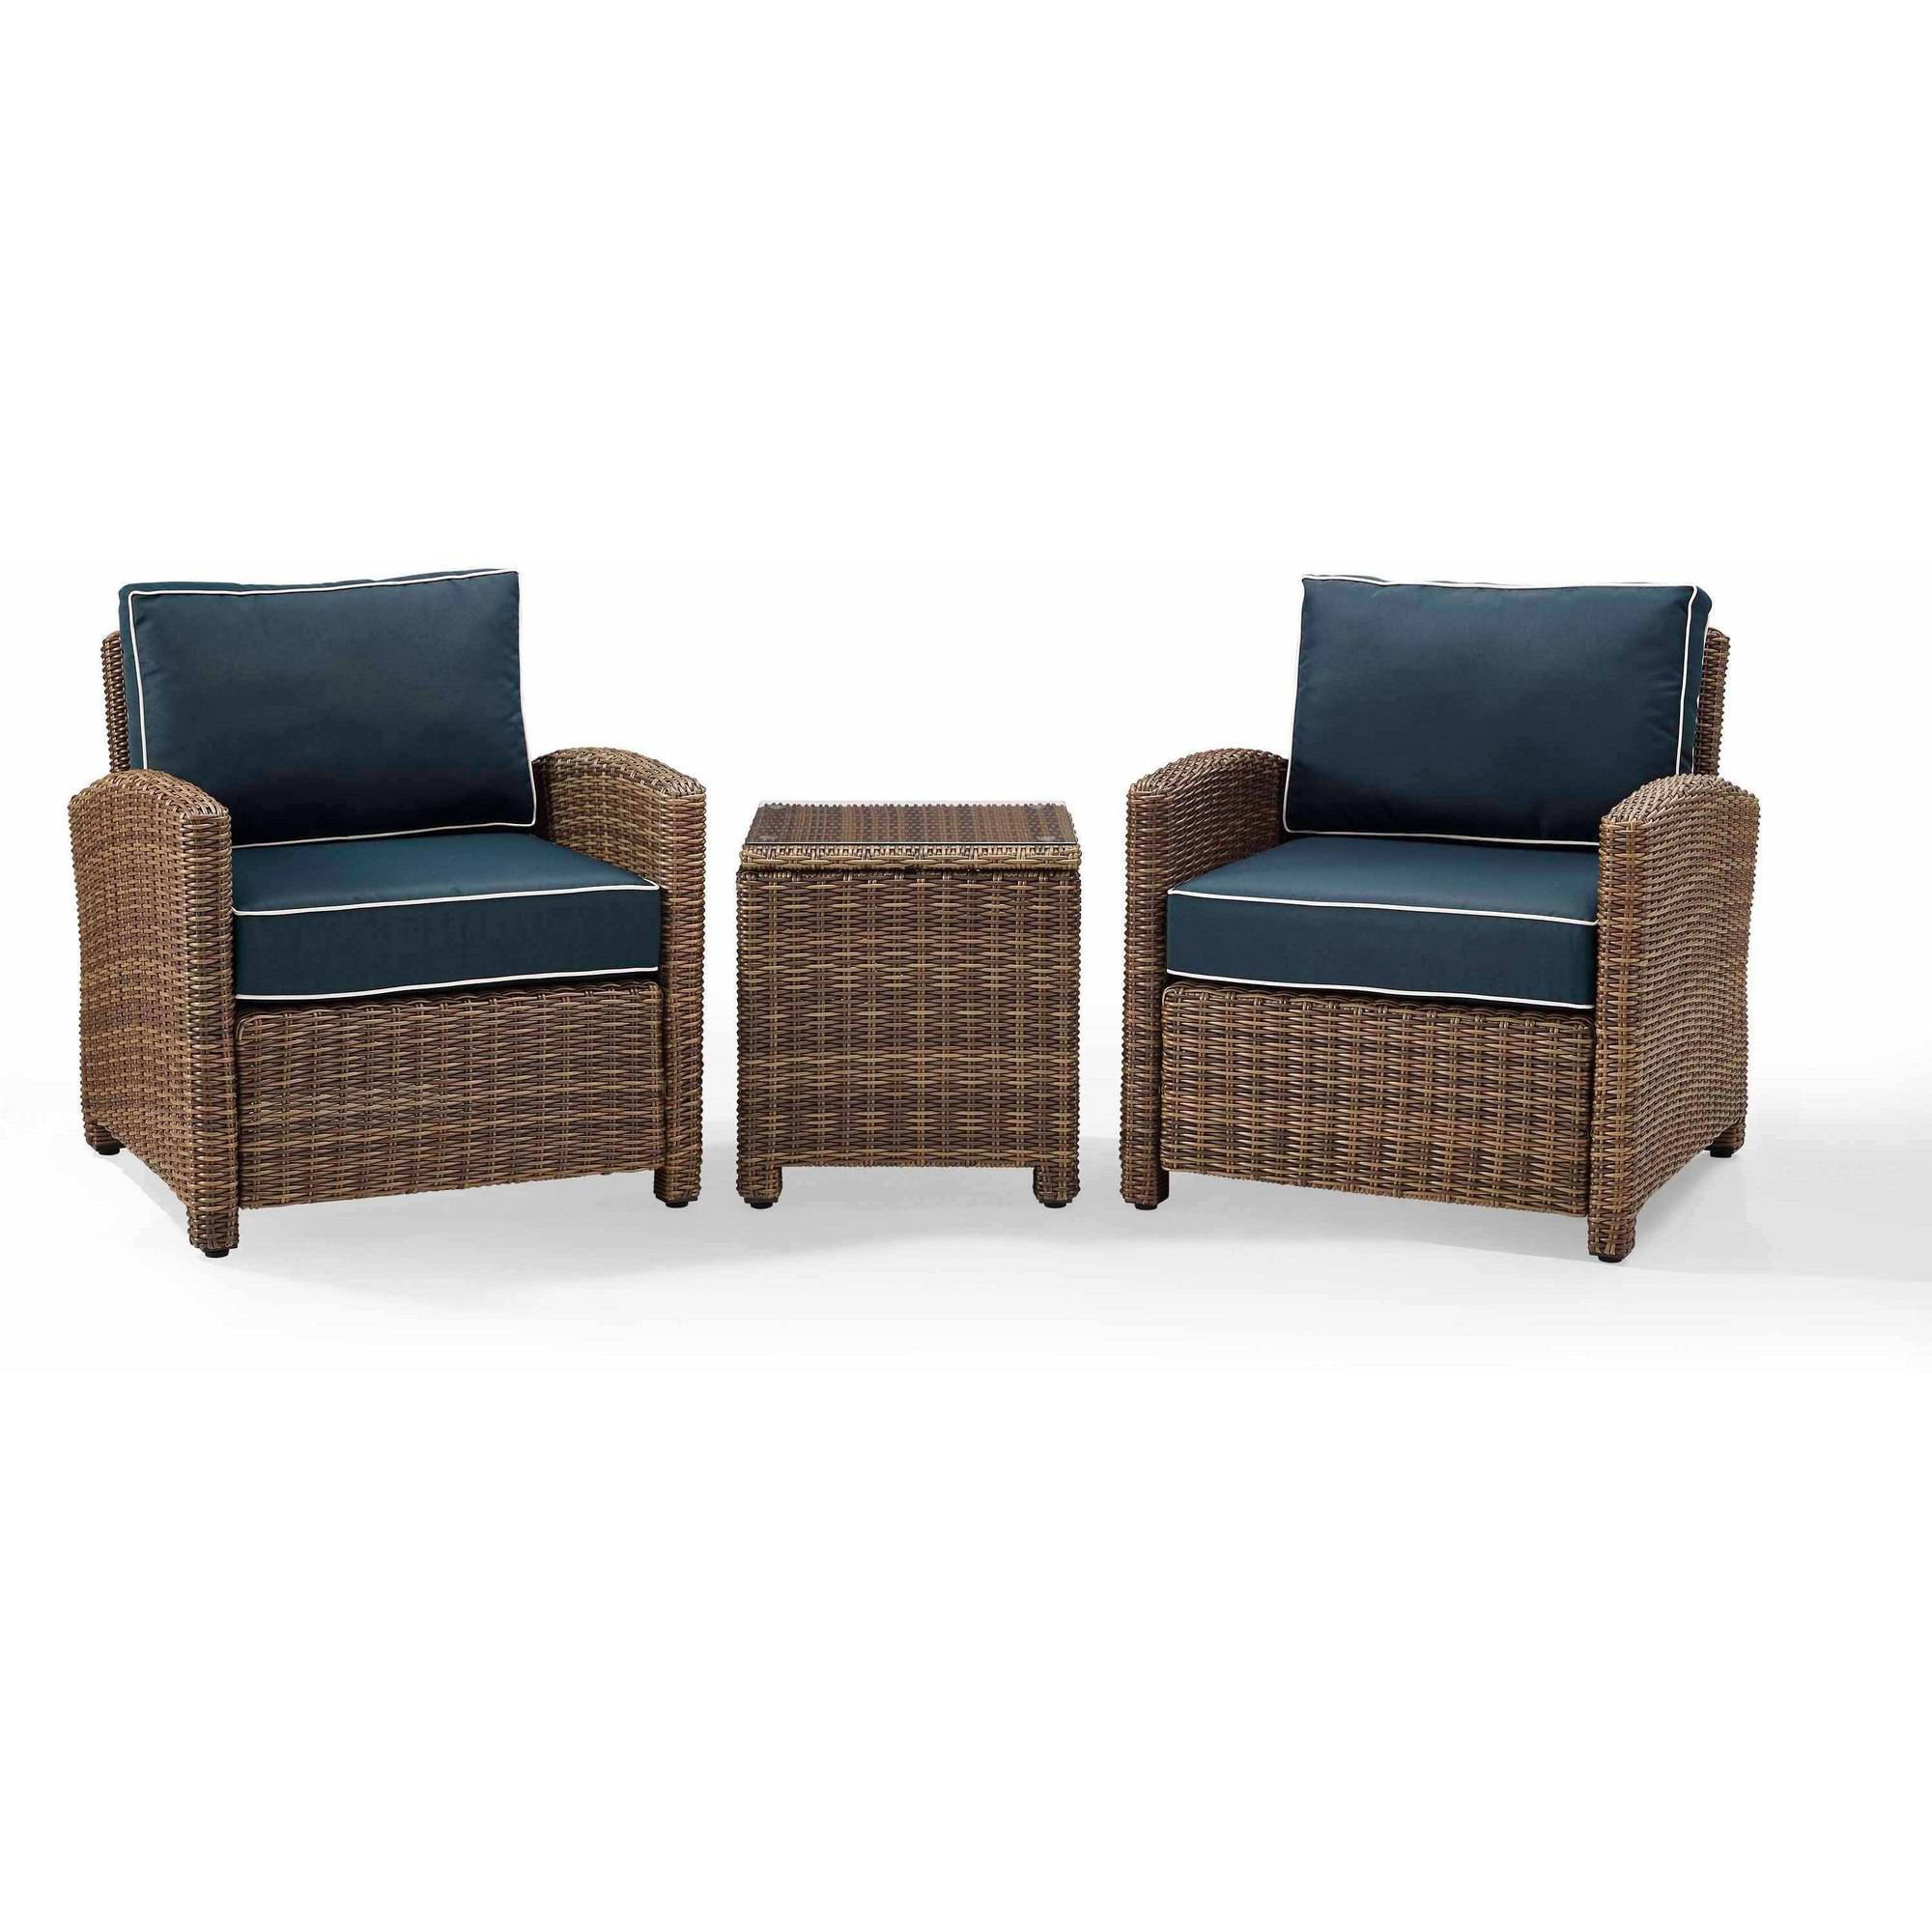 Crosley Furniture Bradenton 3 Piece Outdoor Wicker Conversation Set With  Navy Cushions   Two Arm